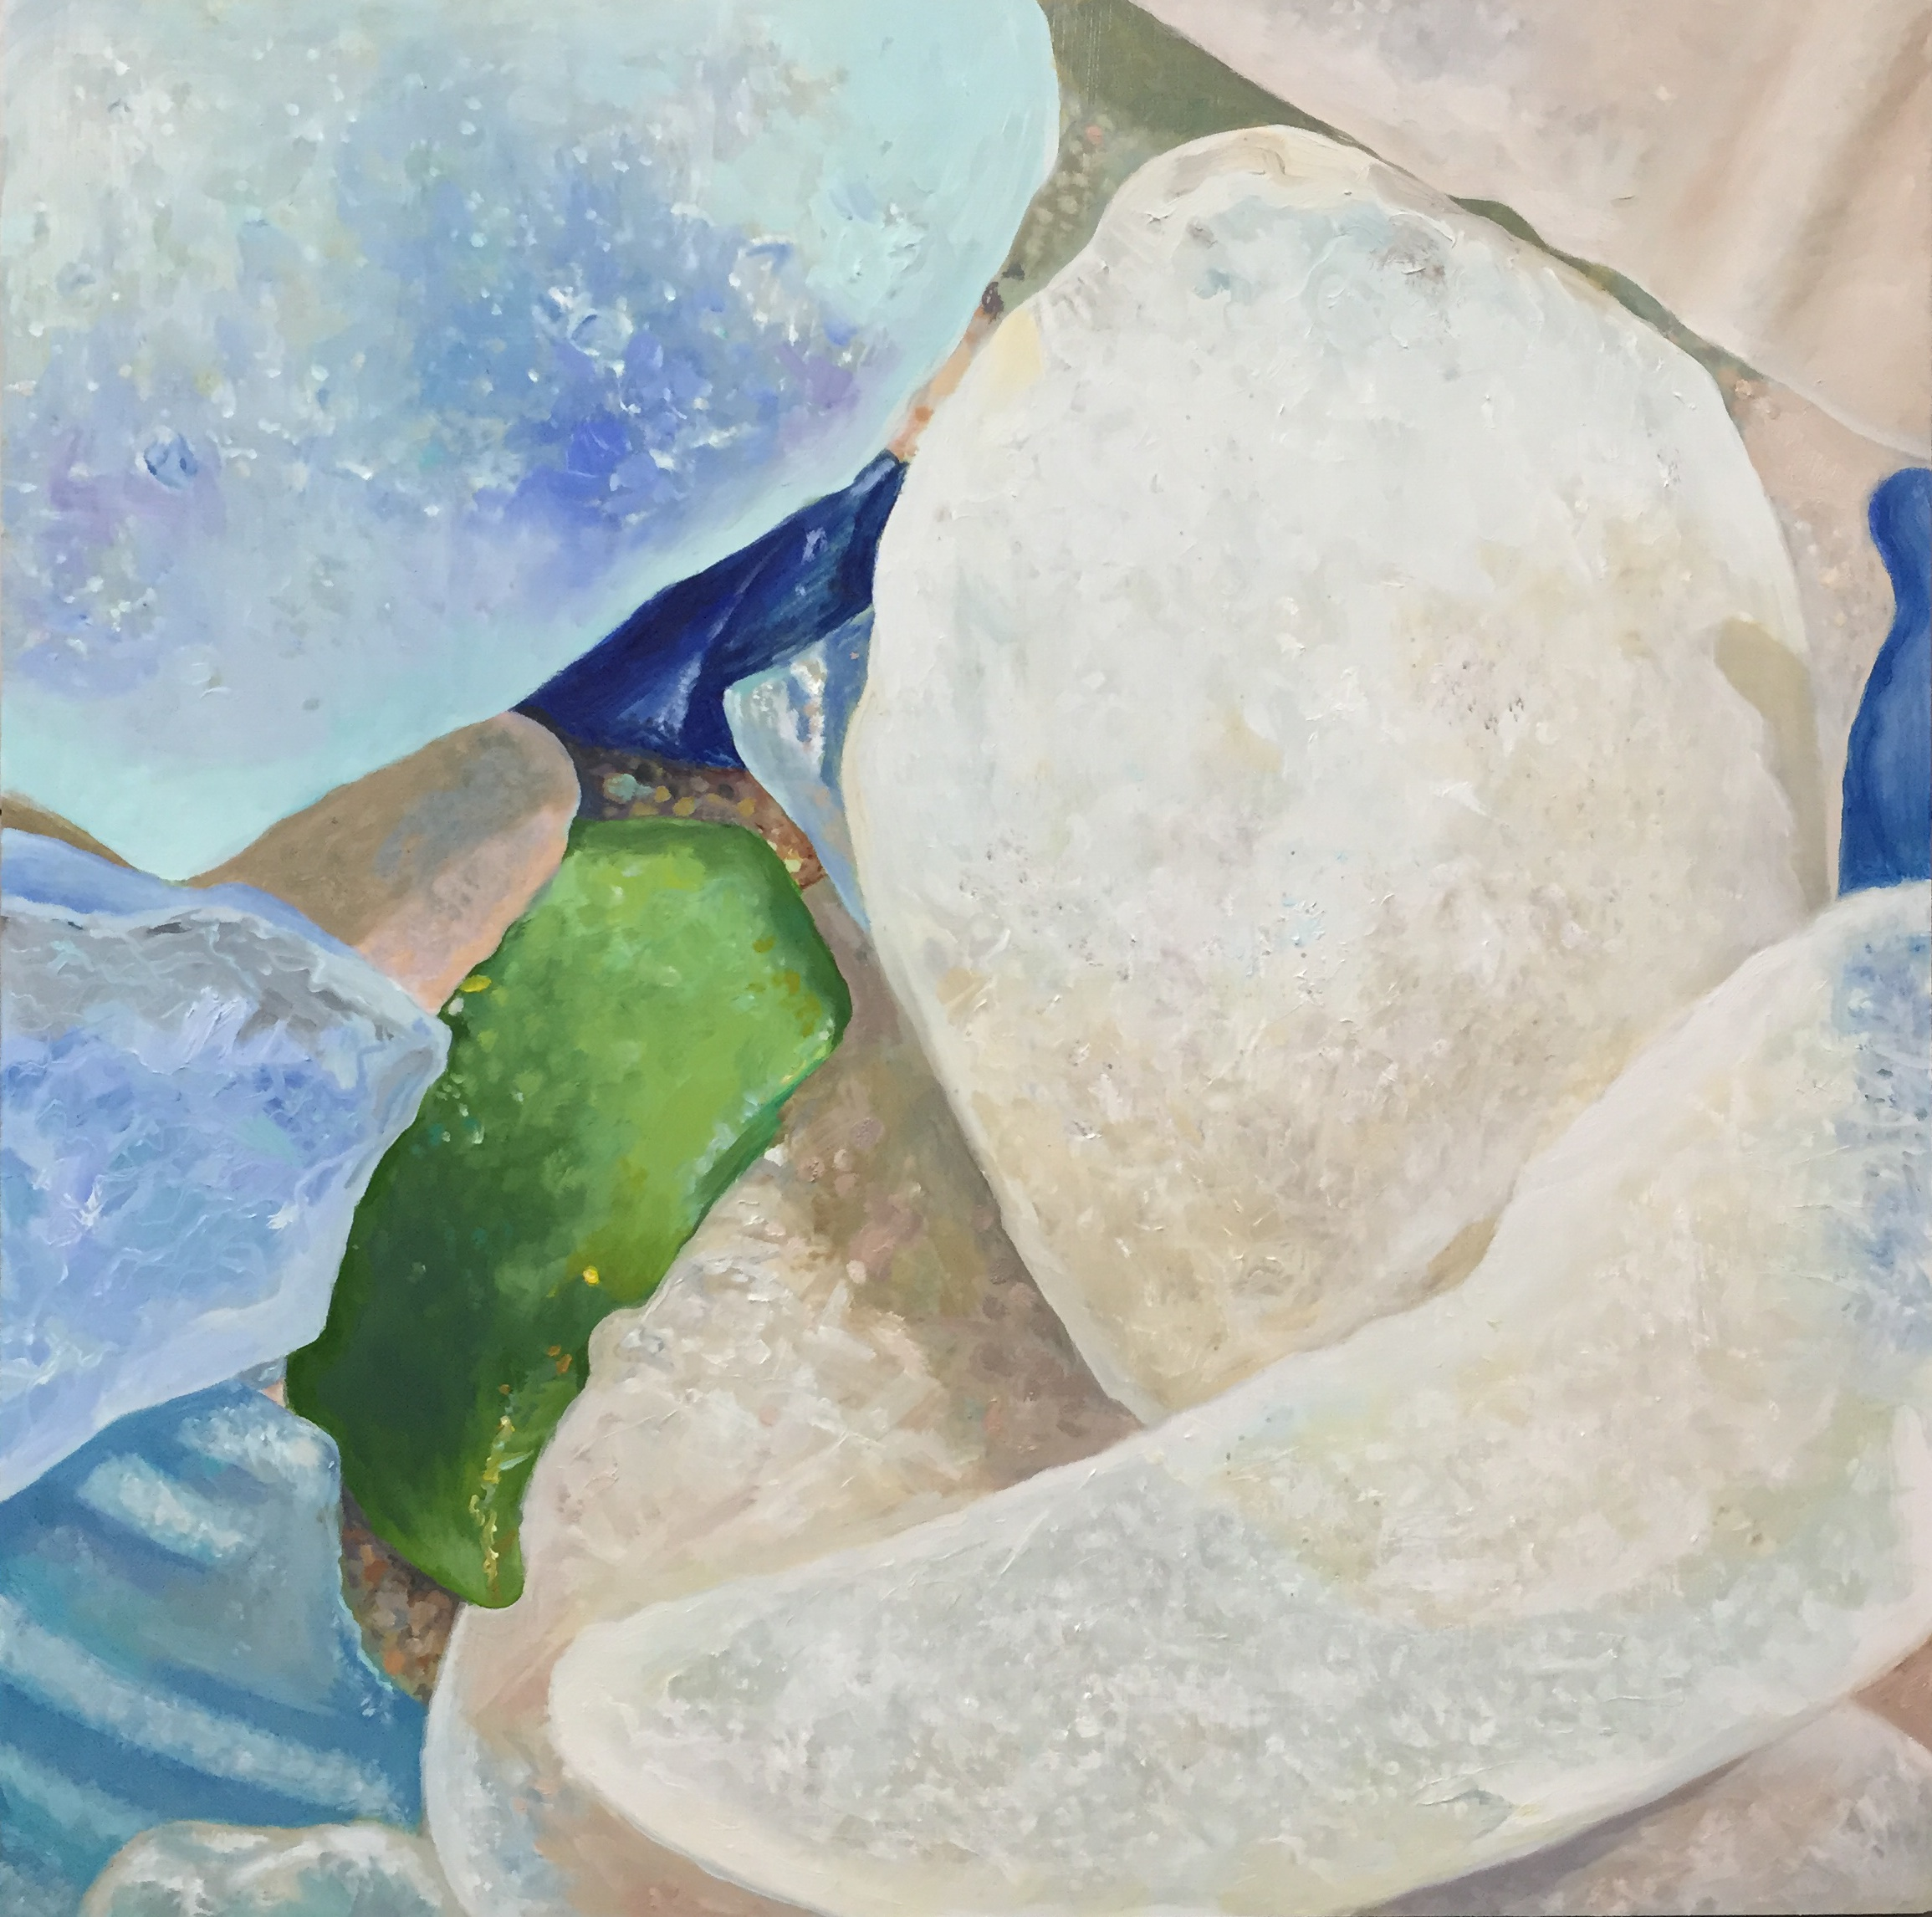 "Seaglass No. 14, 2015, 16x16"", Oil on Wood"